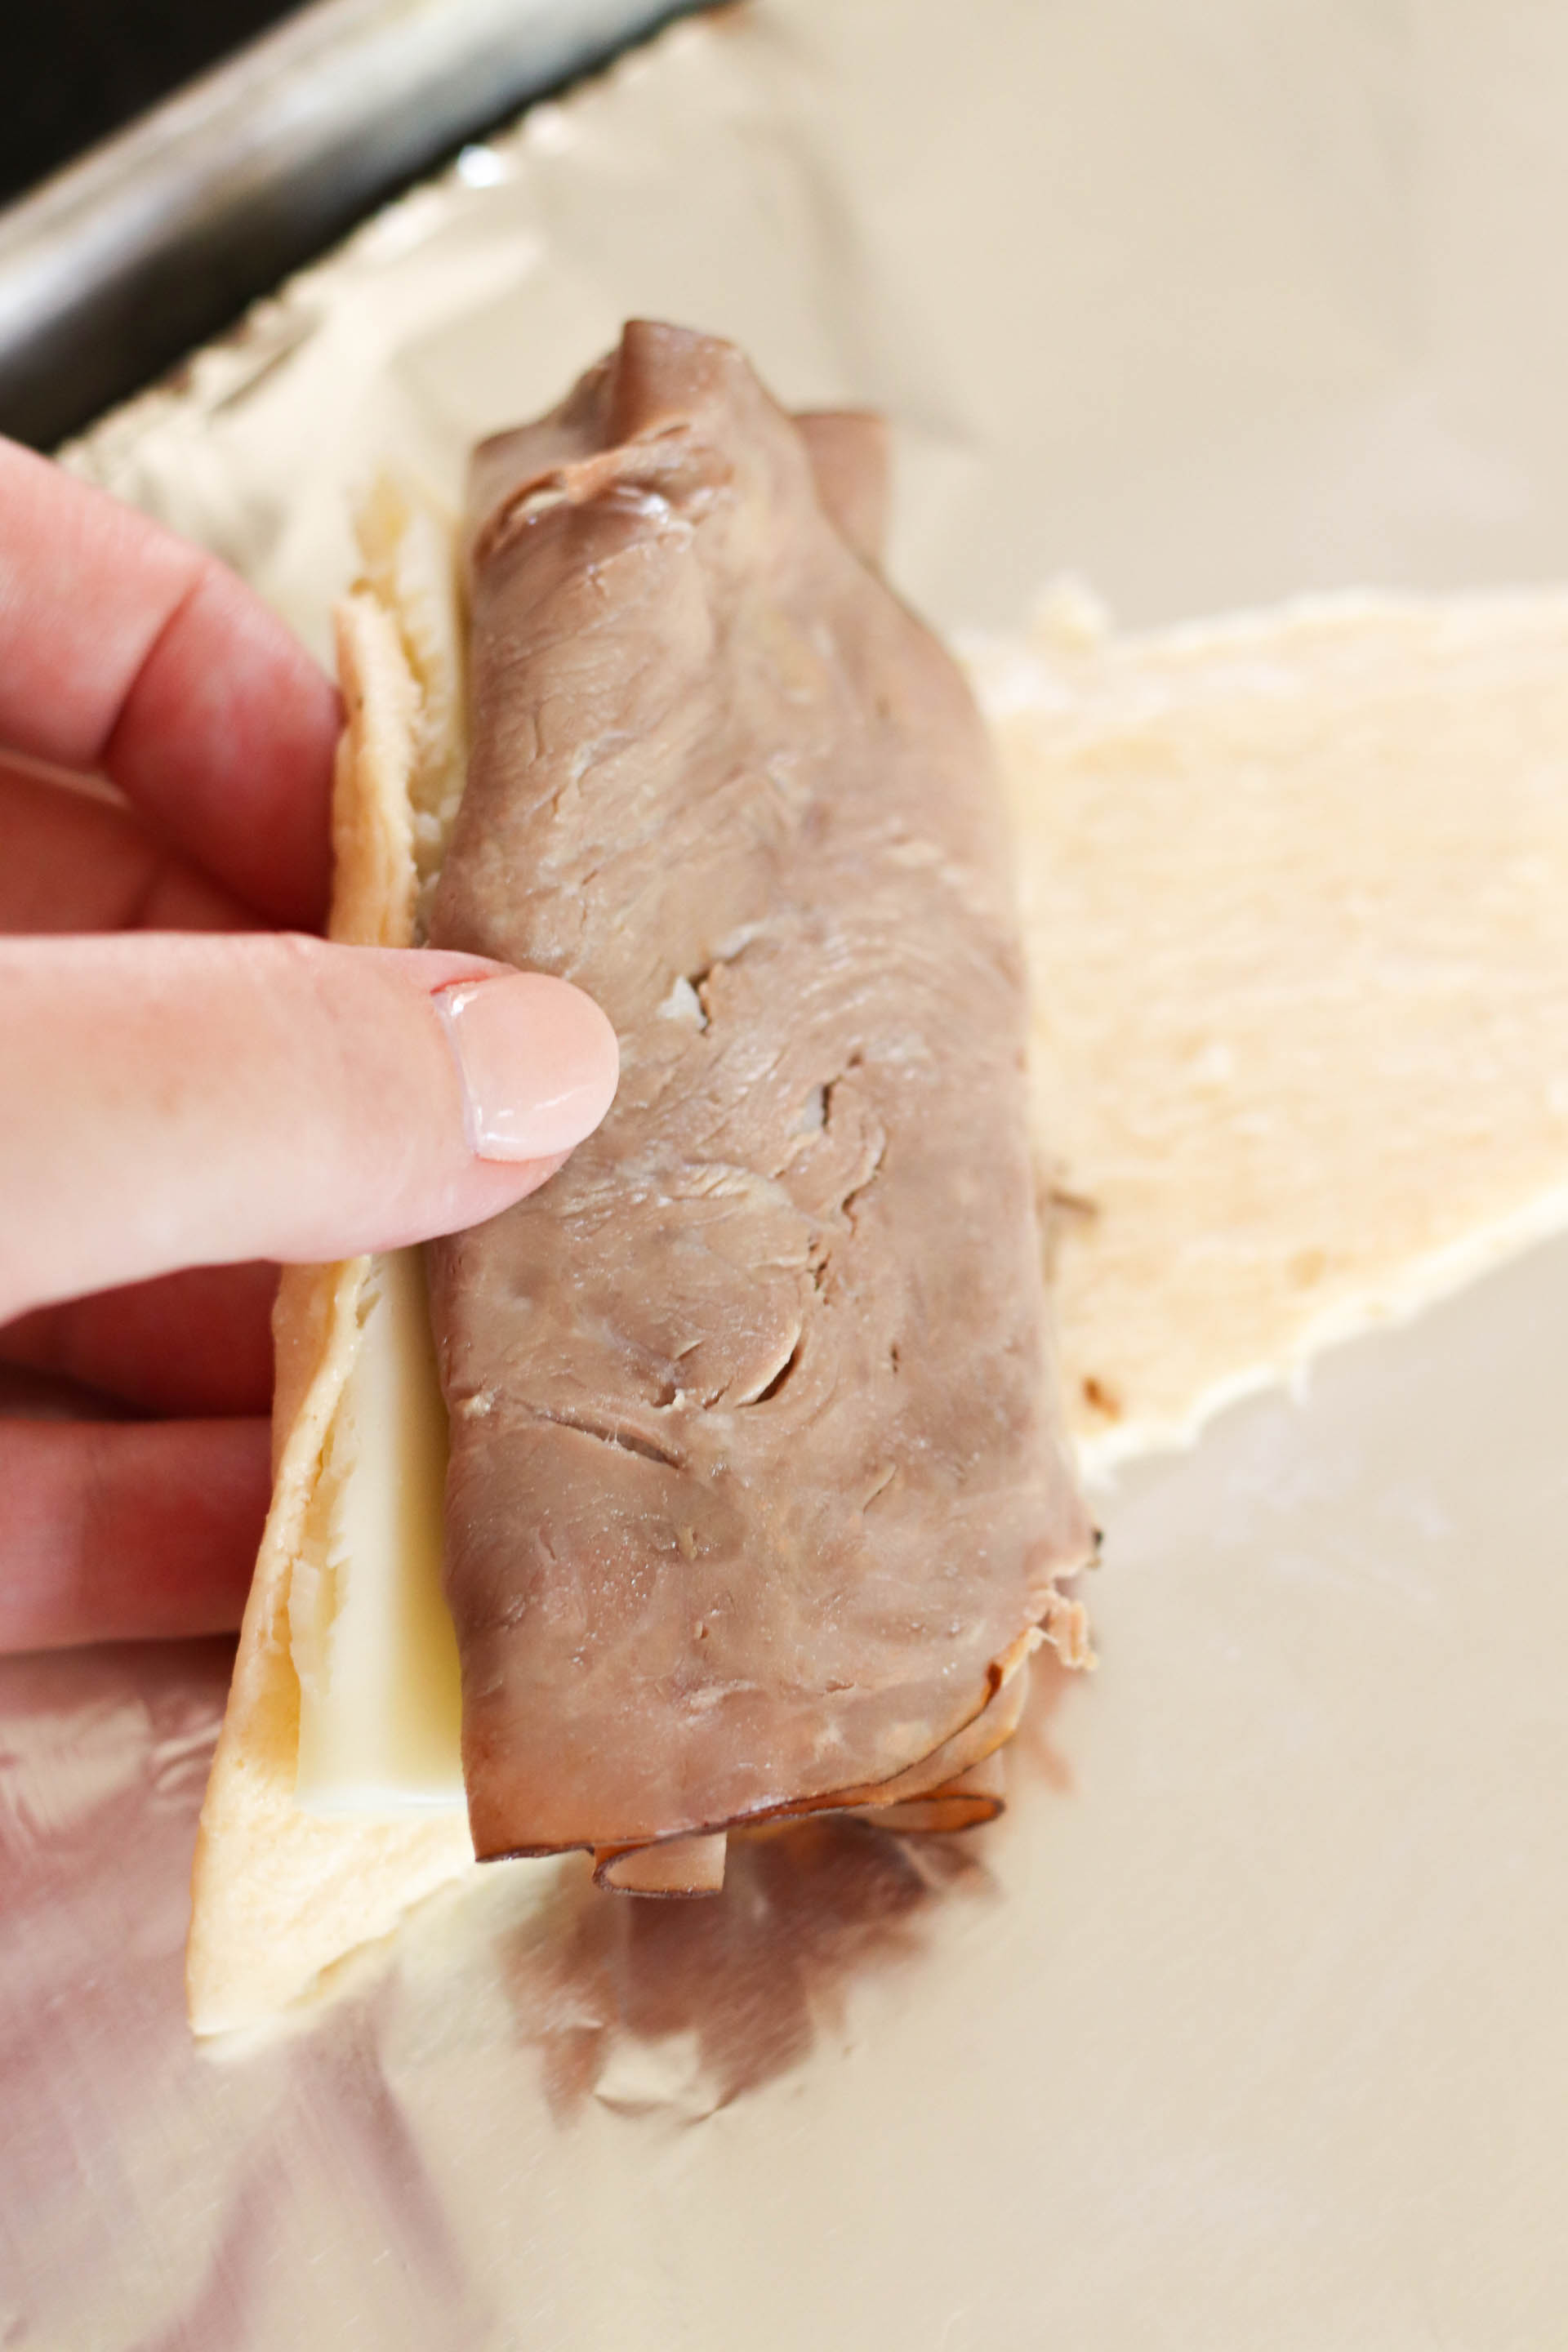 Slice of roast beef and cheese on a spread out crescent, waiting to be rolled up